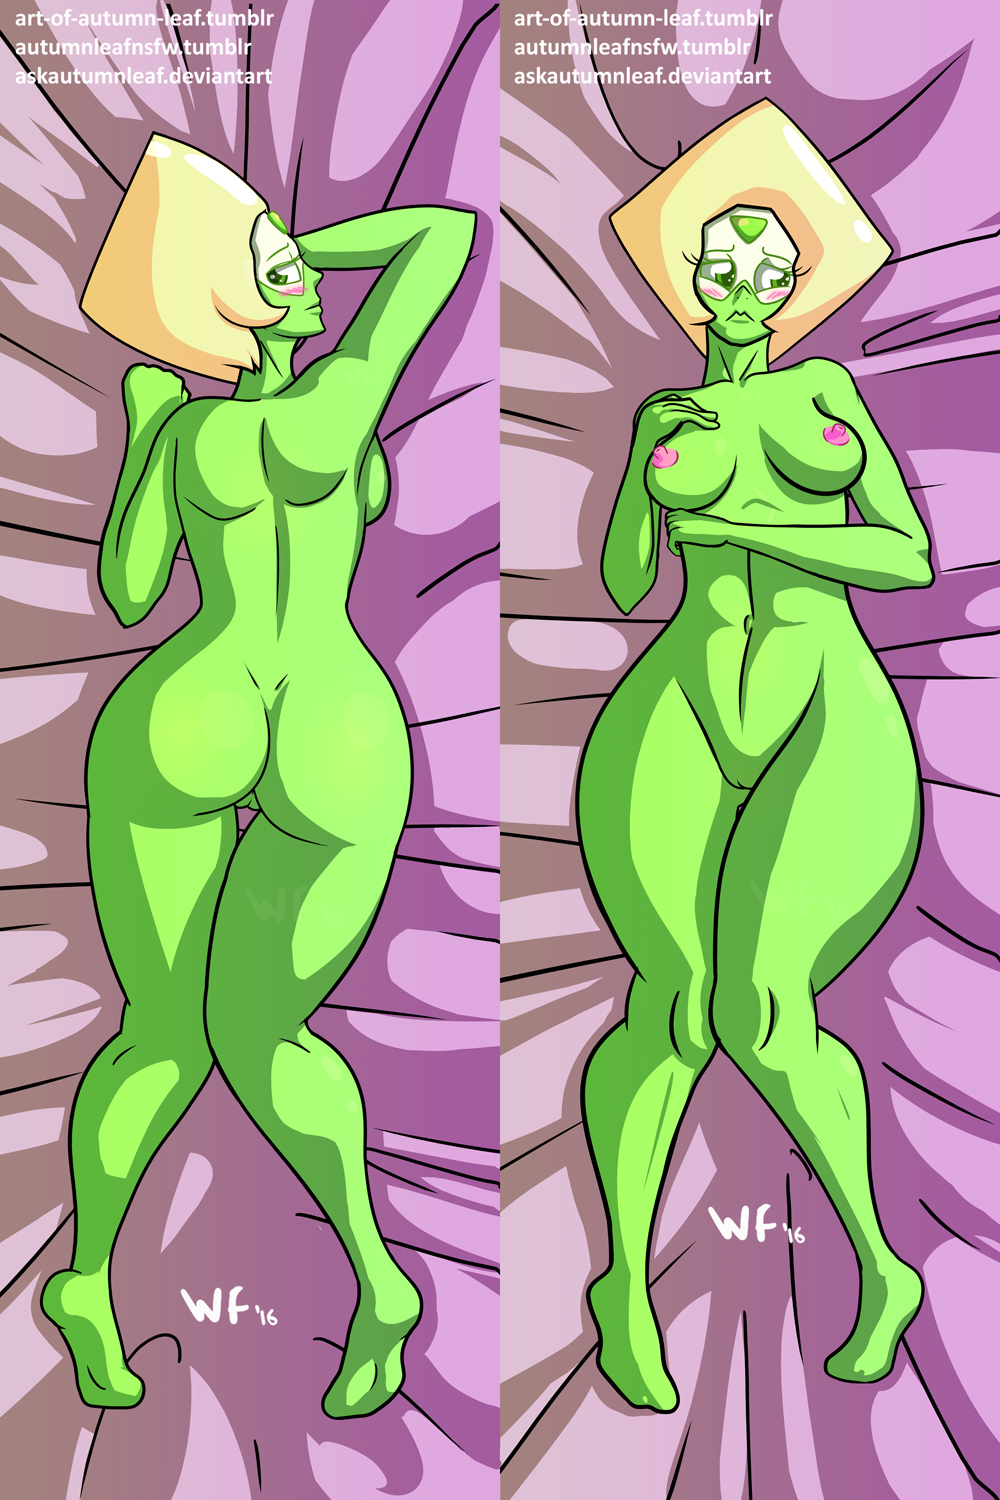 steven images universe of peridot Who is cat ears league of legends